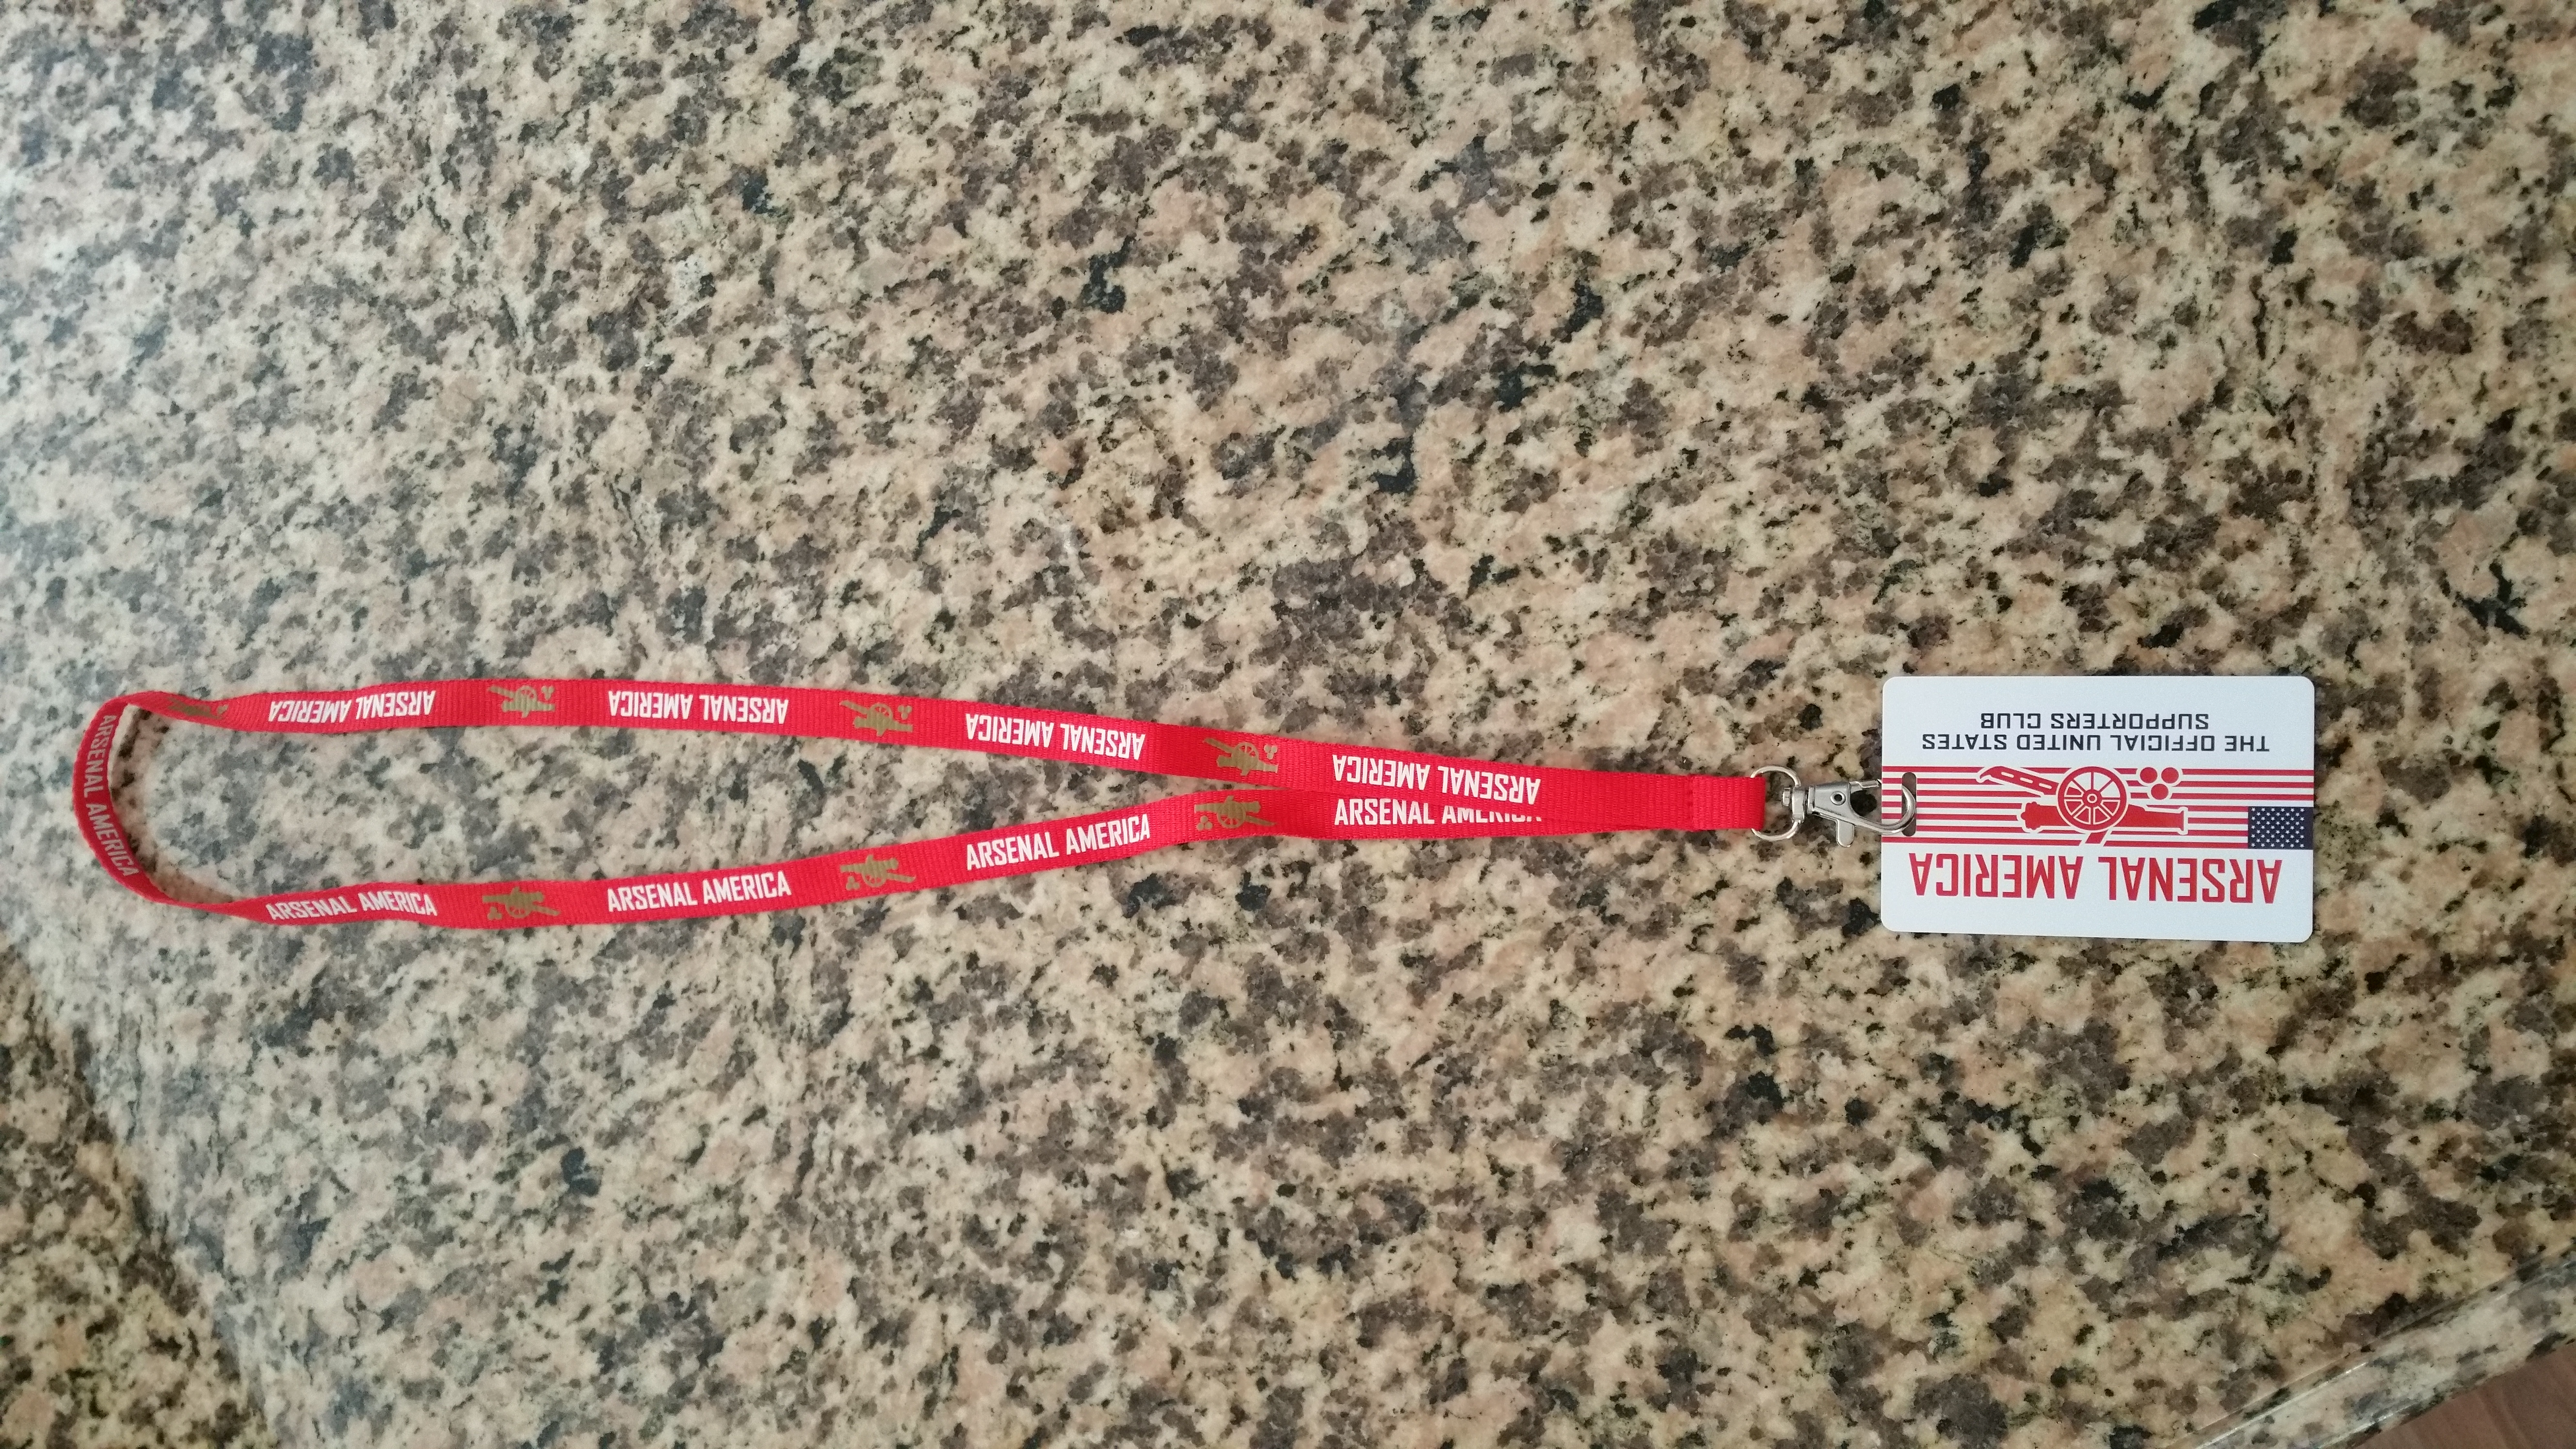 LANYARD AND MEMBER CARD1421